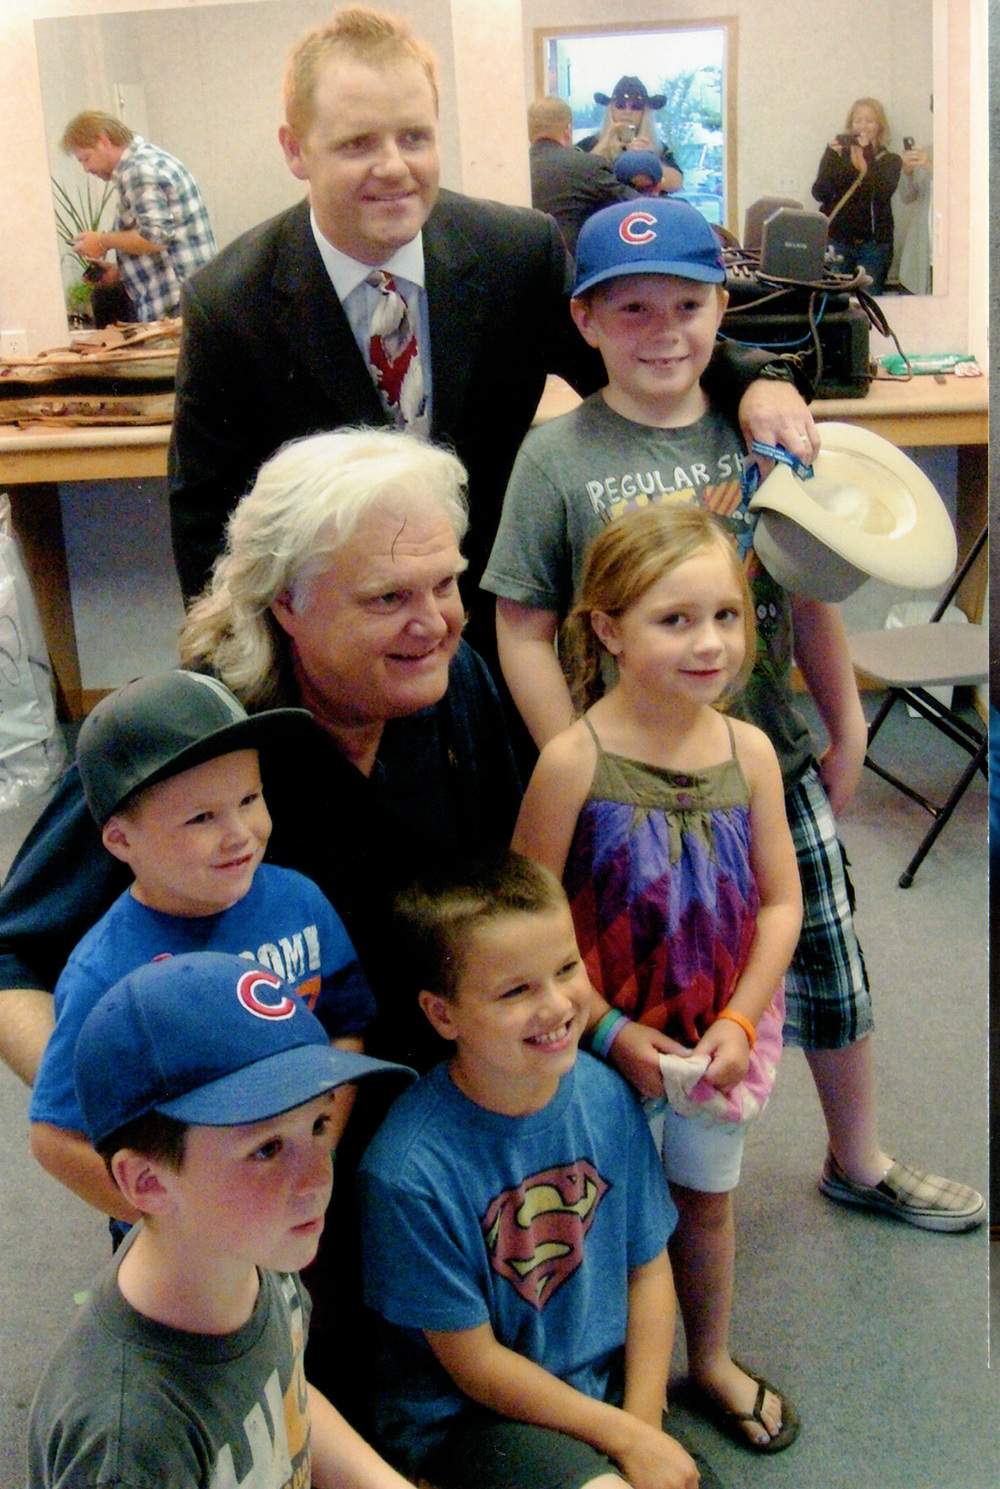 Curtis Appleton of Black Lightning with his kids and Ricky Skaggs